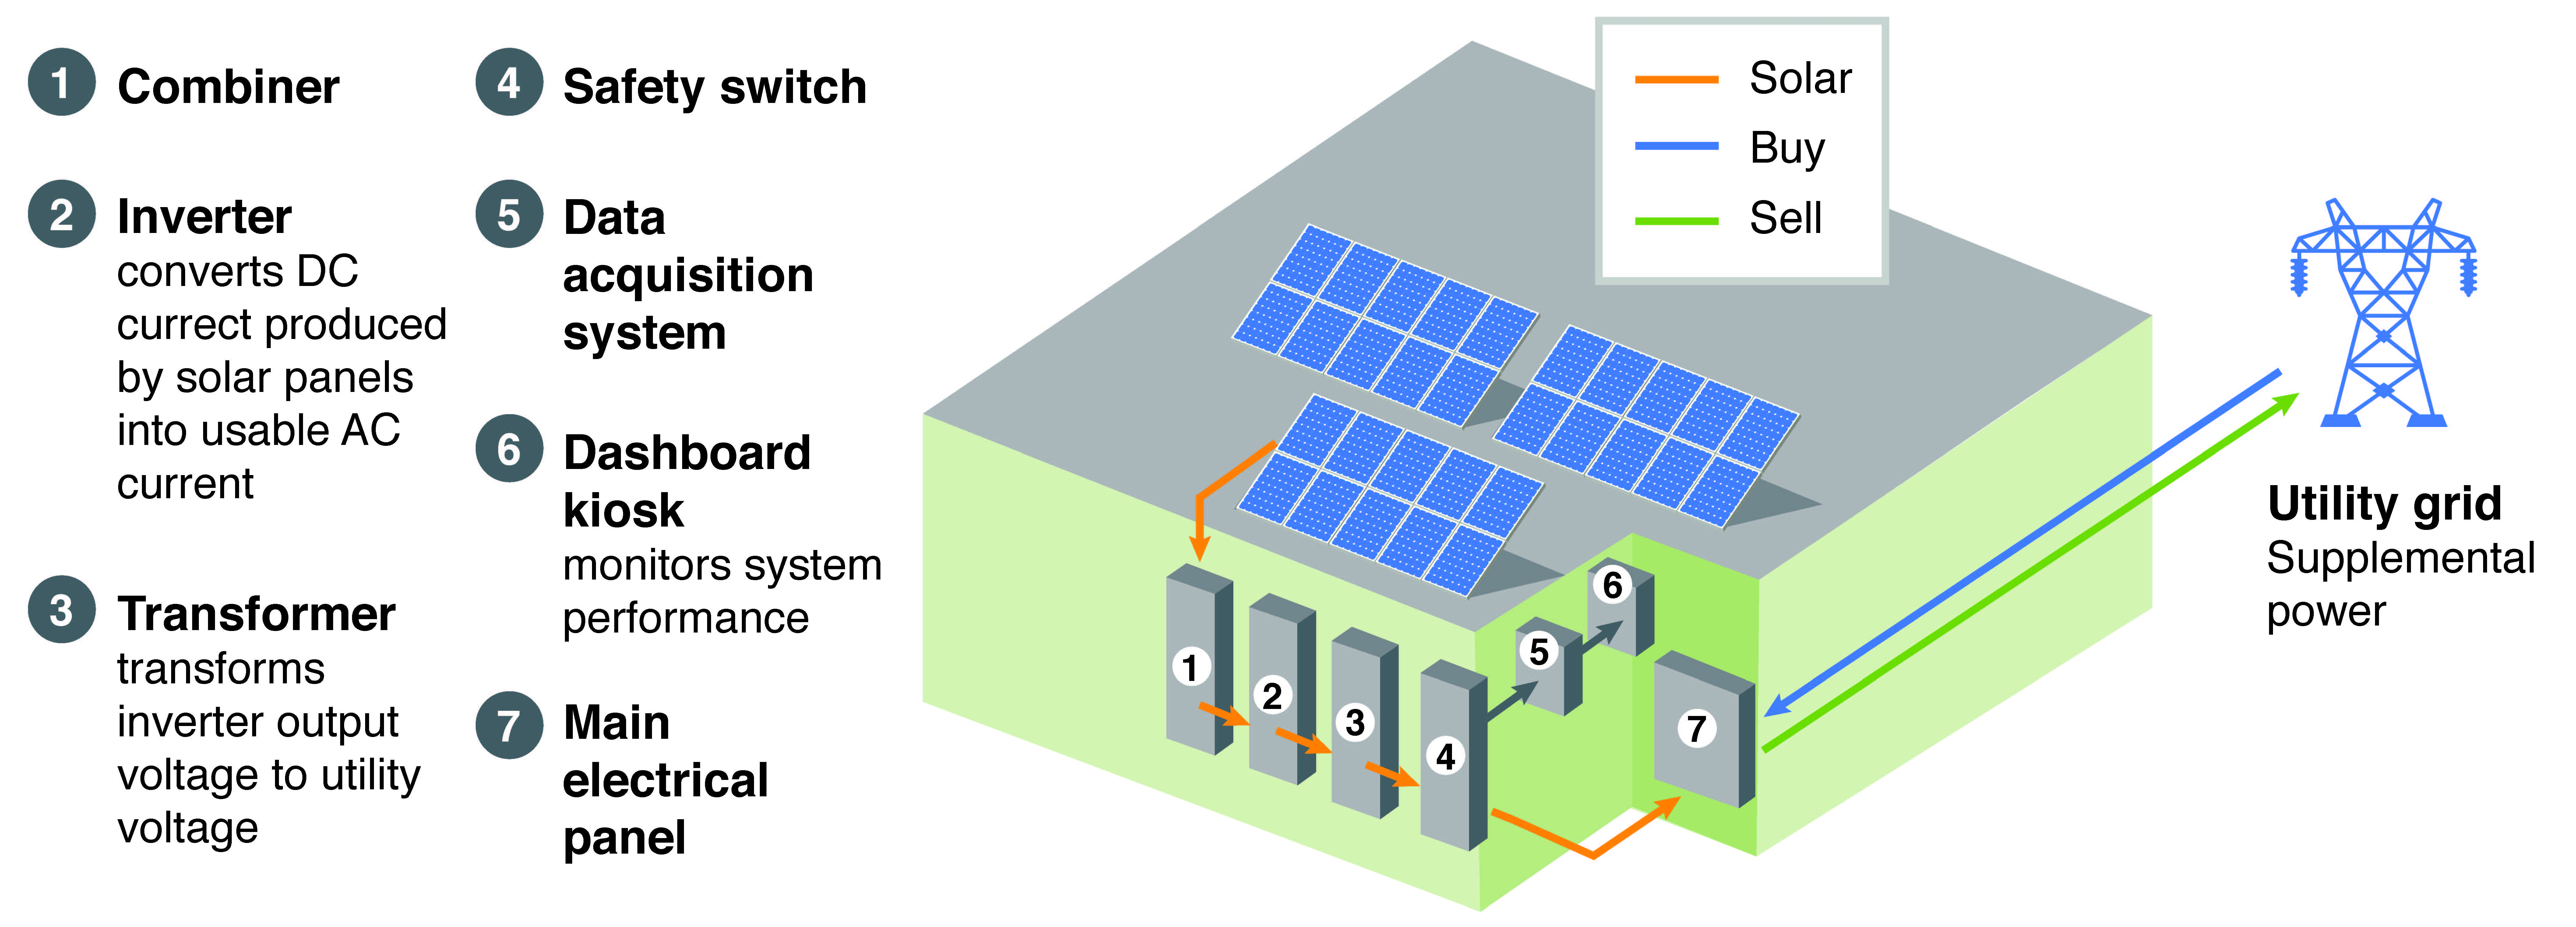 Drawing of a commercial solar system. The solar panels on the roof send energy to the combiner. The combiner sends energy to the inverter, which converts DC currents produced by the solar panels into usable AC current. The inverter sends the current to the transformer, which transforms inverter output voltage to utility voltage. The transformer sends the current to the safety switch, and the safety switch sends it to the main electrical panel. The main electrical panel buys and sells current from and to the utility grid. A data acquisition system connects to the safety switch and works with a dashboard kiosk to monitor system performance.